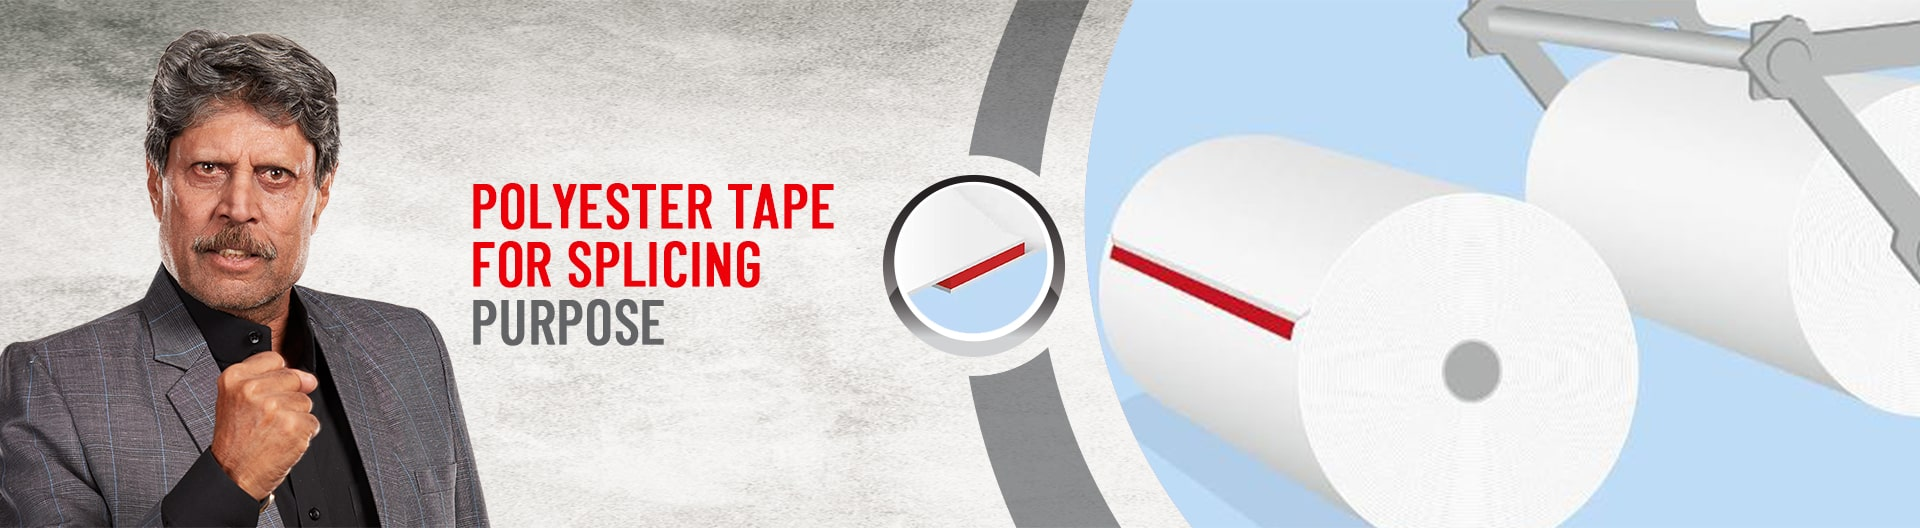 Polyester Tape For Splicing Purpose